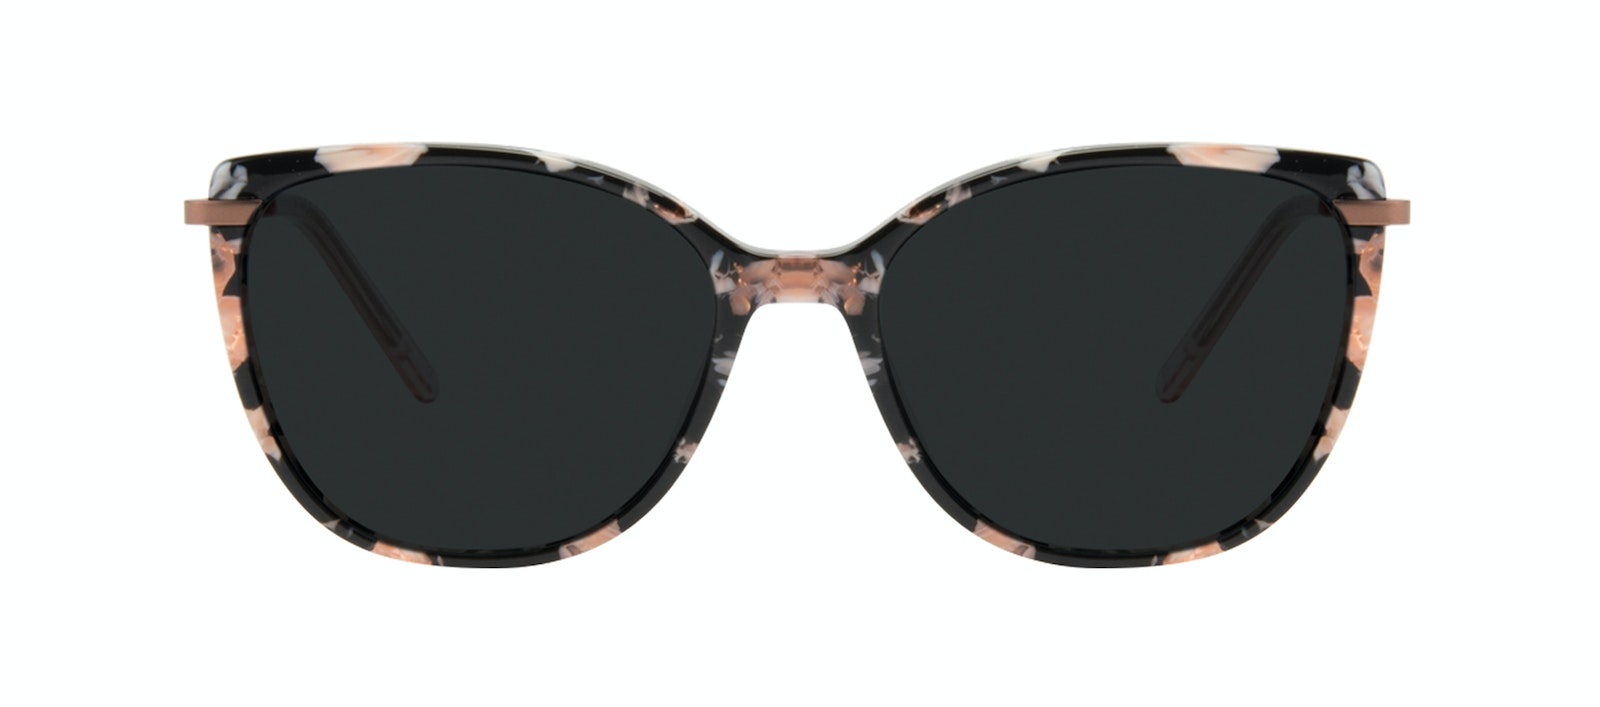 Affordable Fashion Glasses Rectangle Square Sunglasses Women Illusion Licorice Front